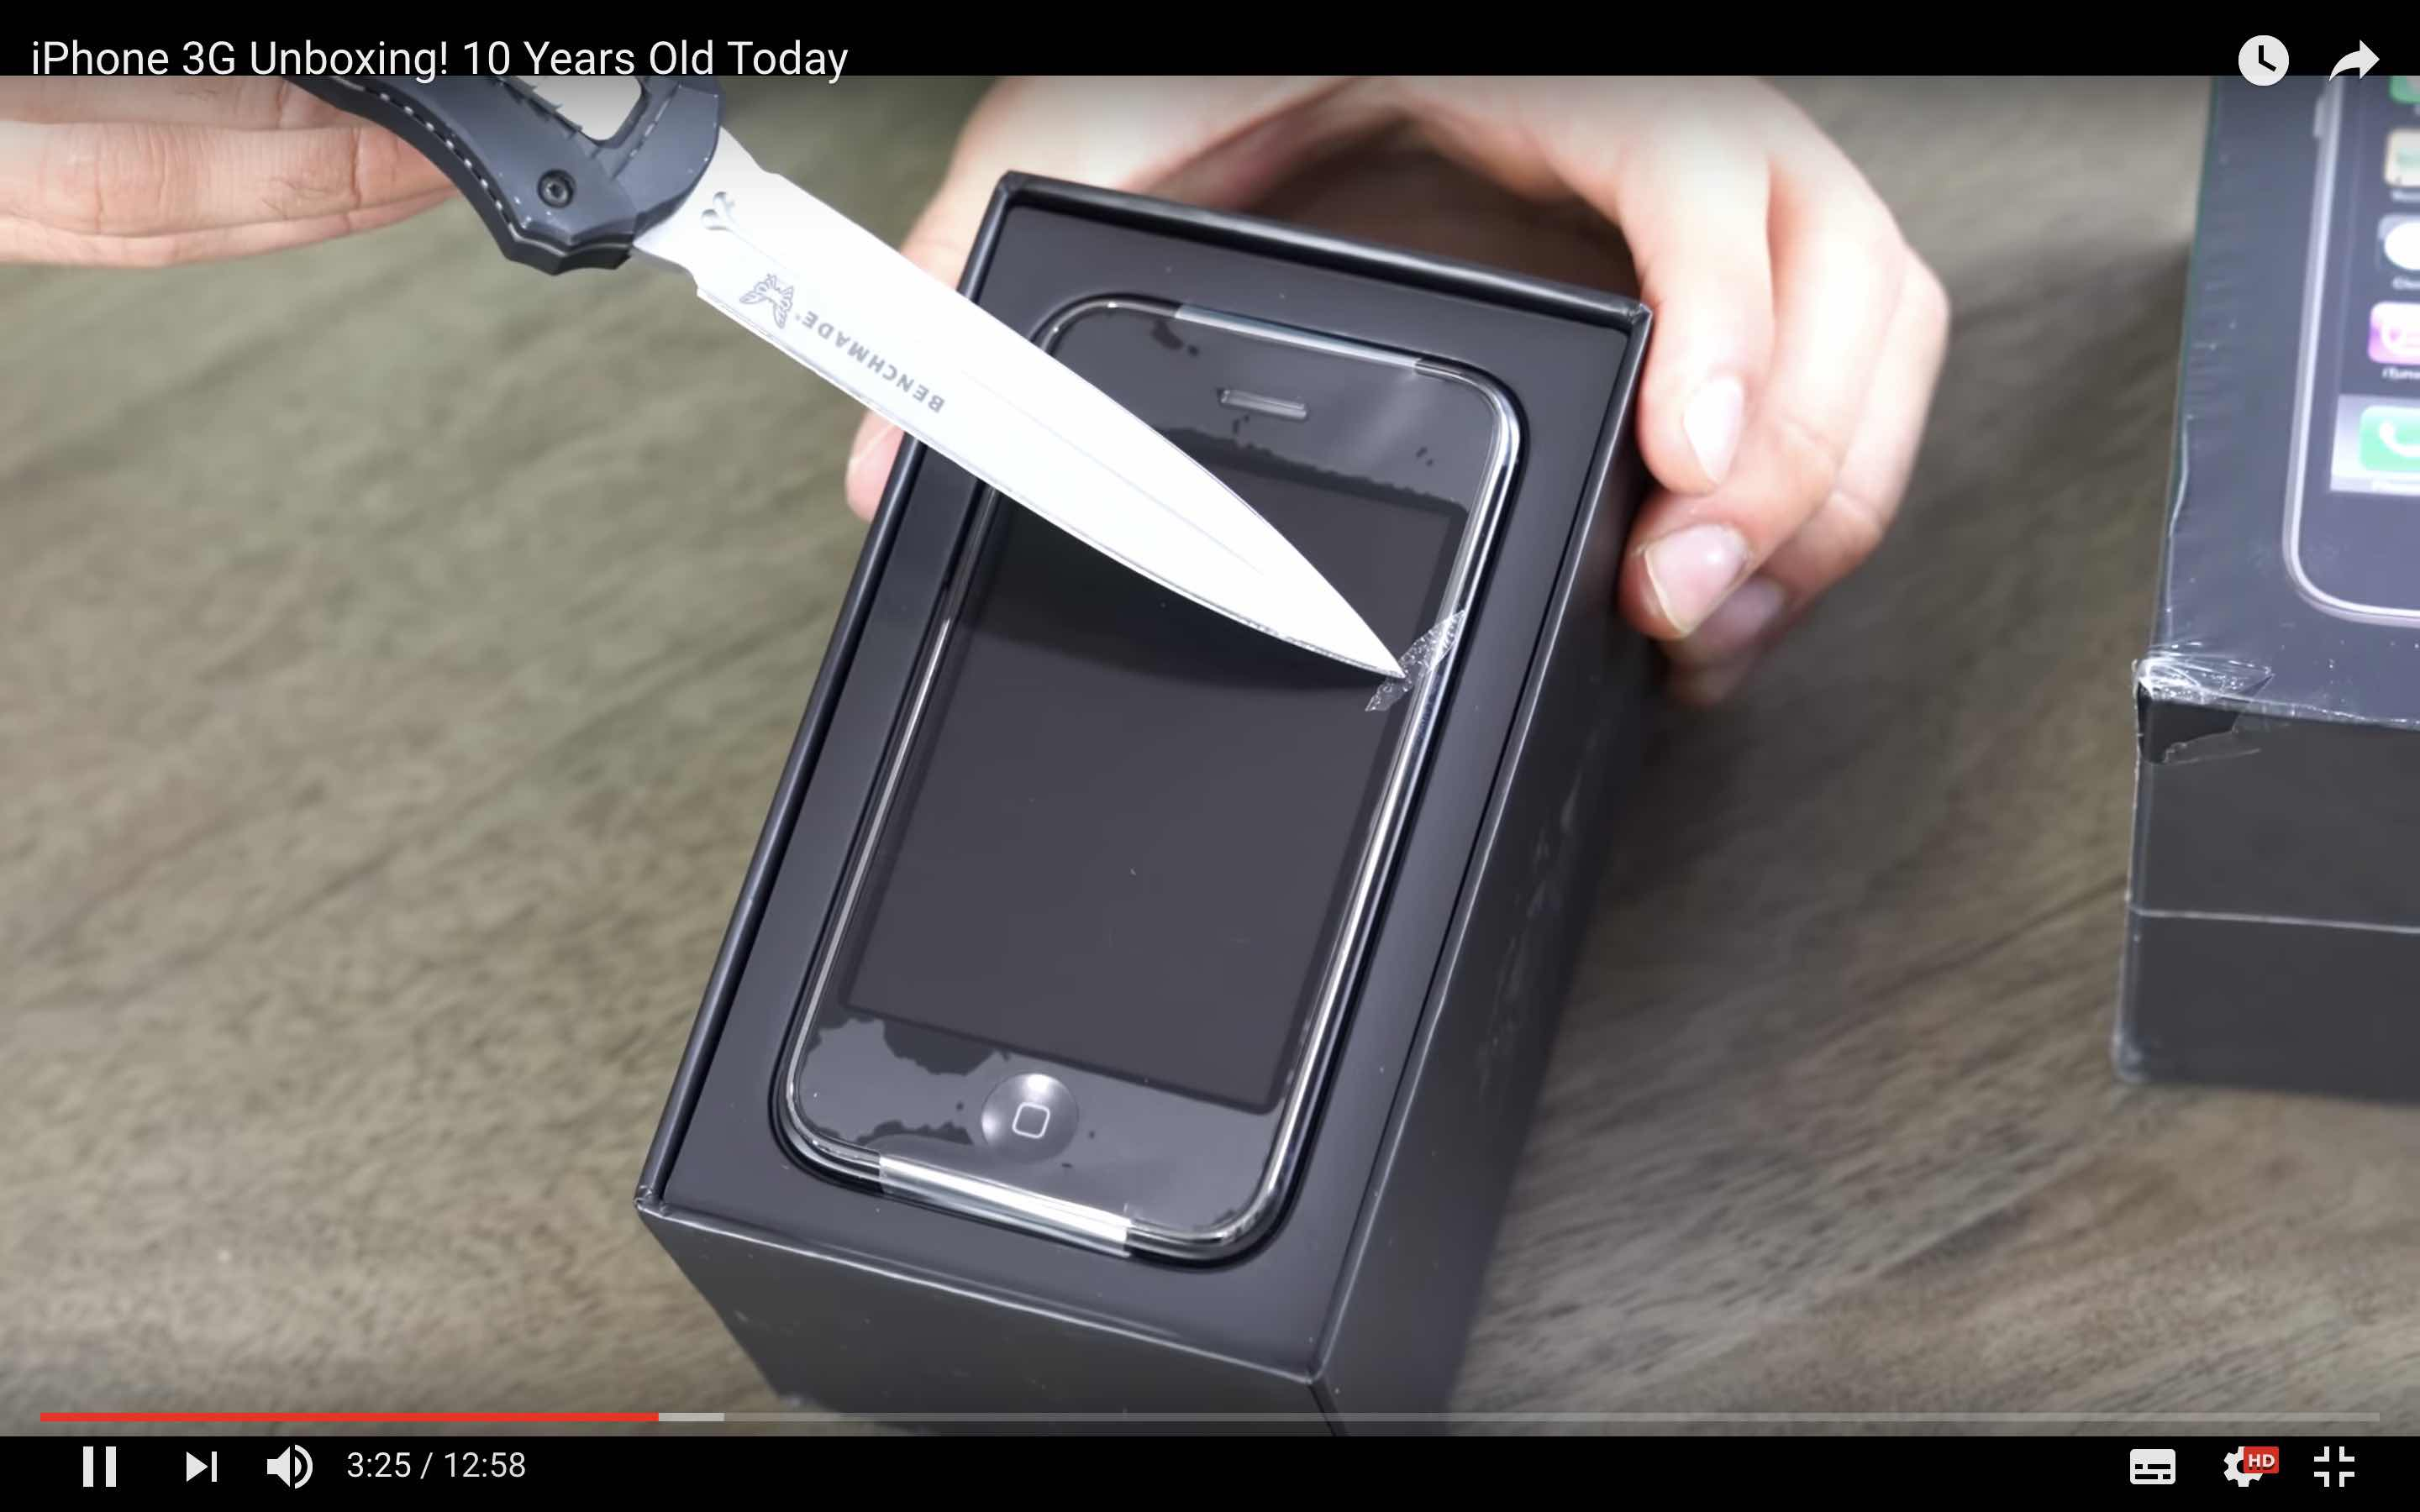 iPhone3G unboxing 3